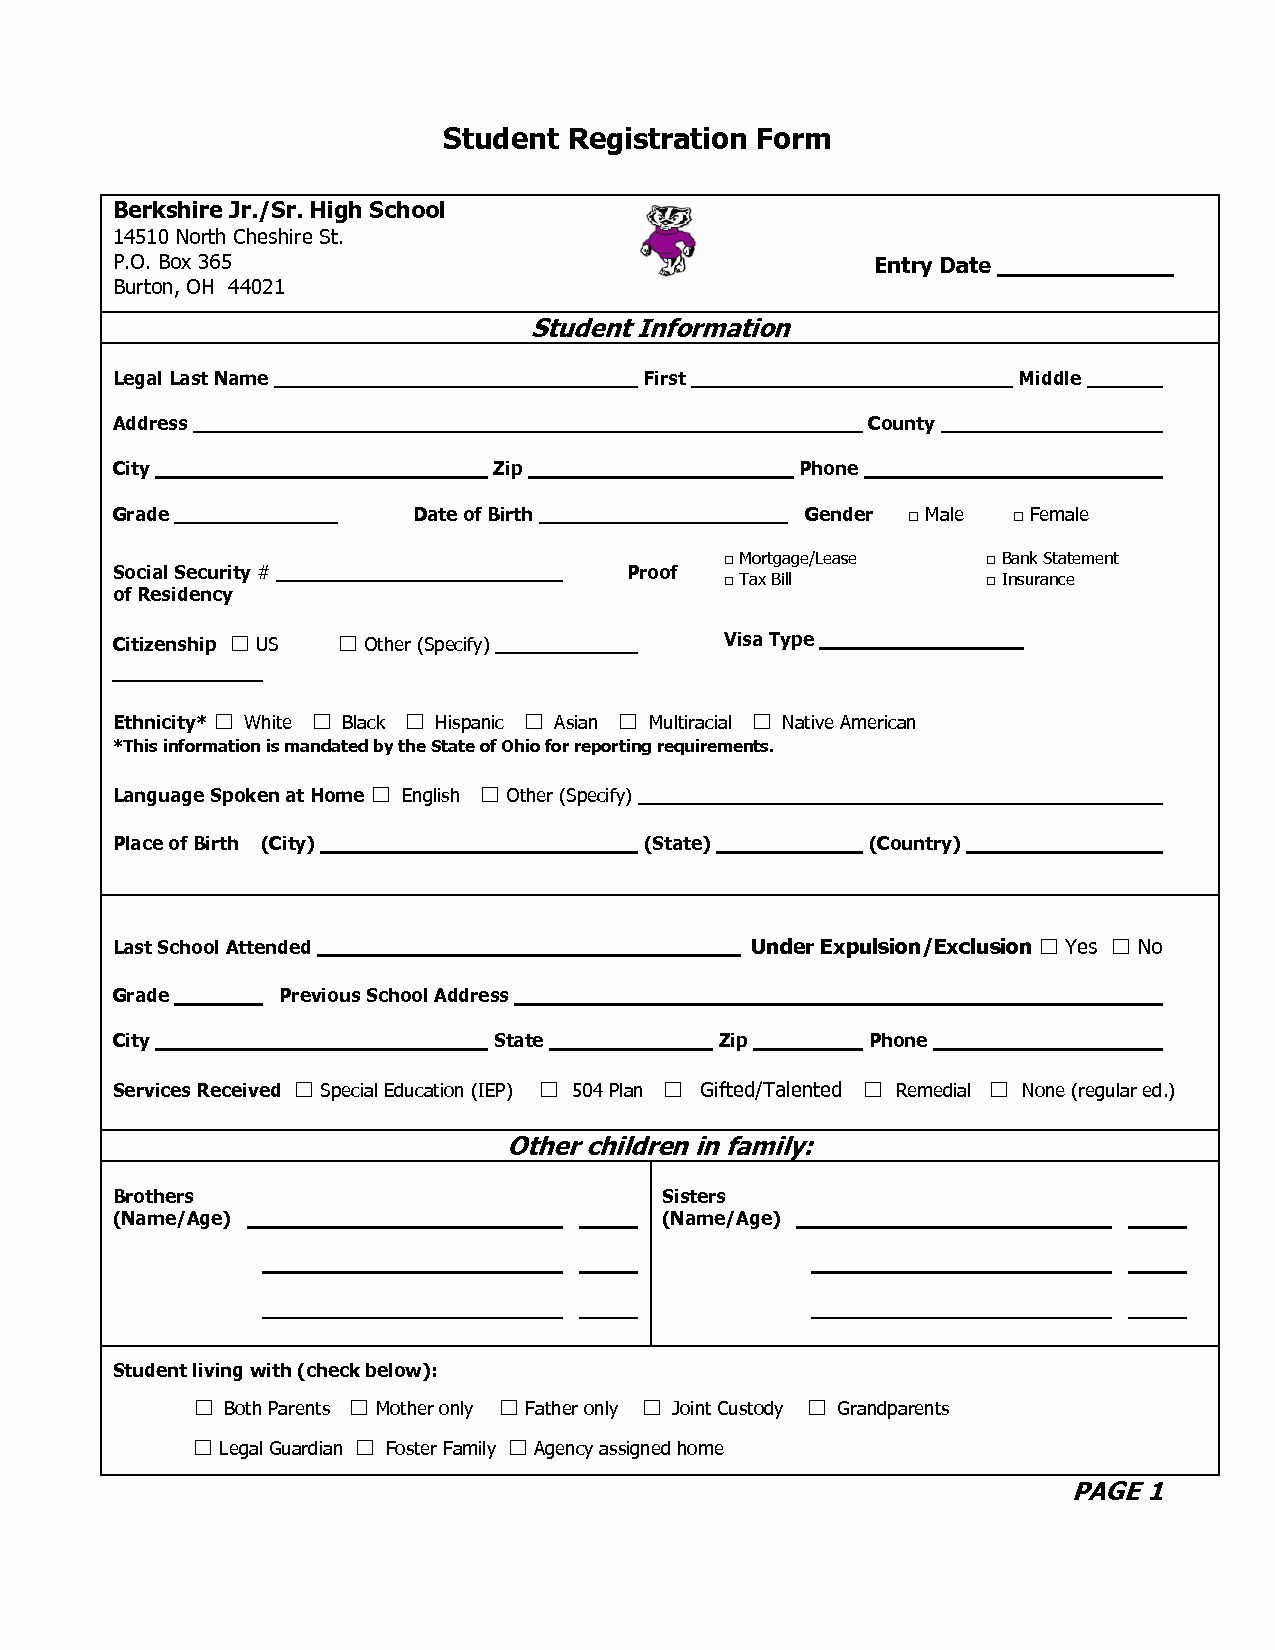 Artwork Release Form Template Luxury Students Application Form